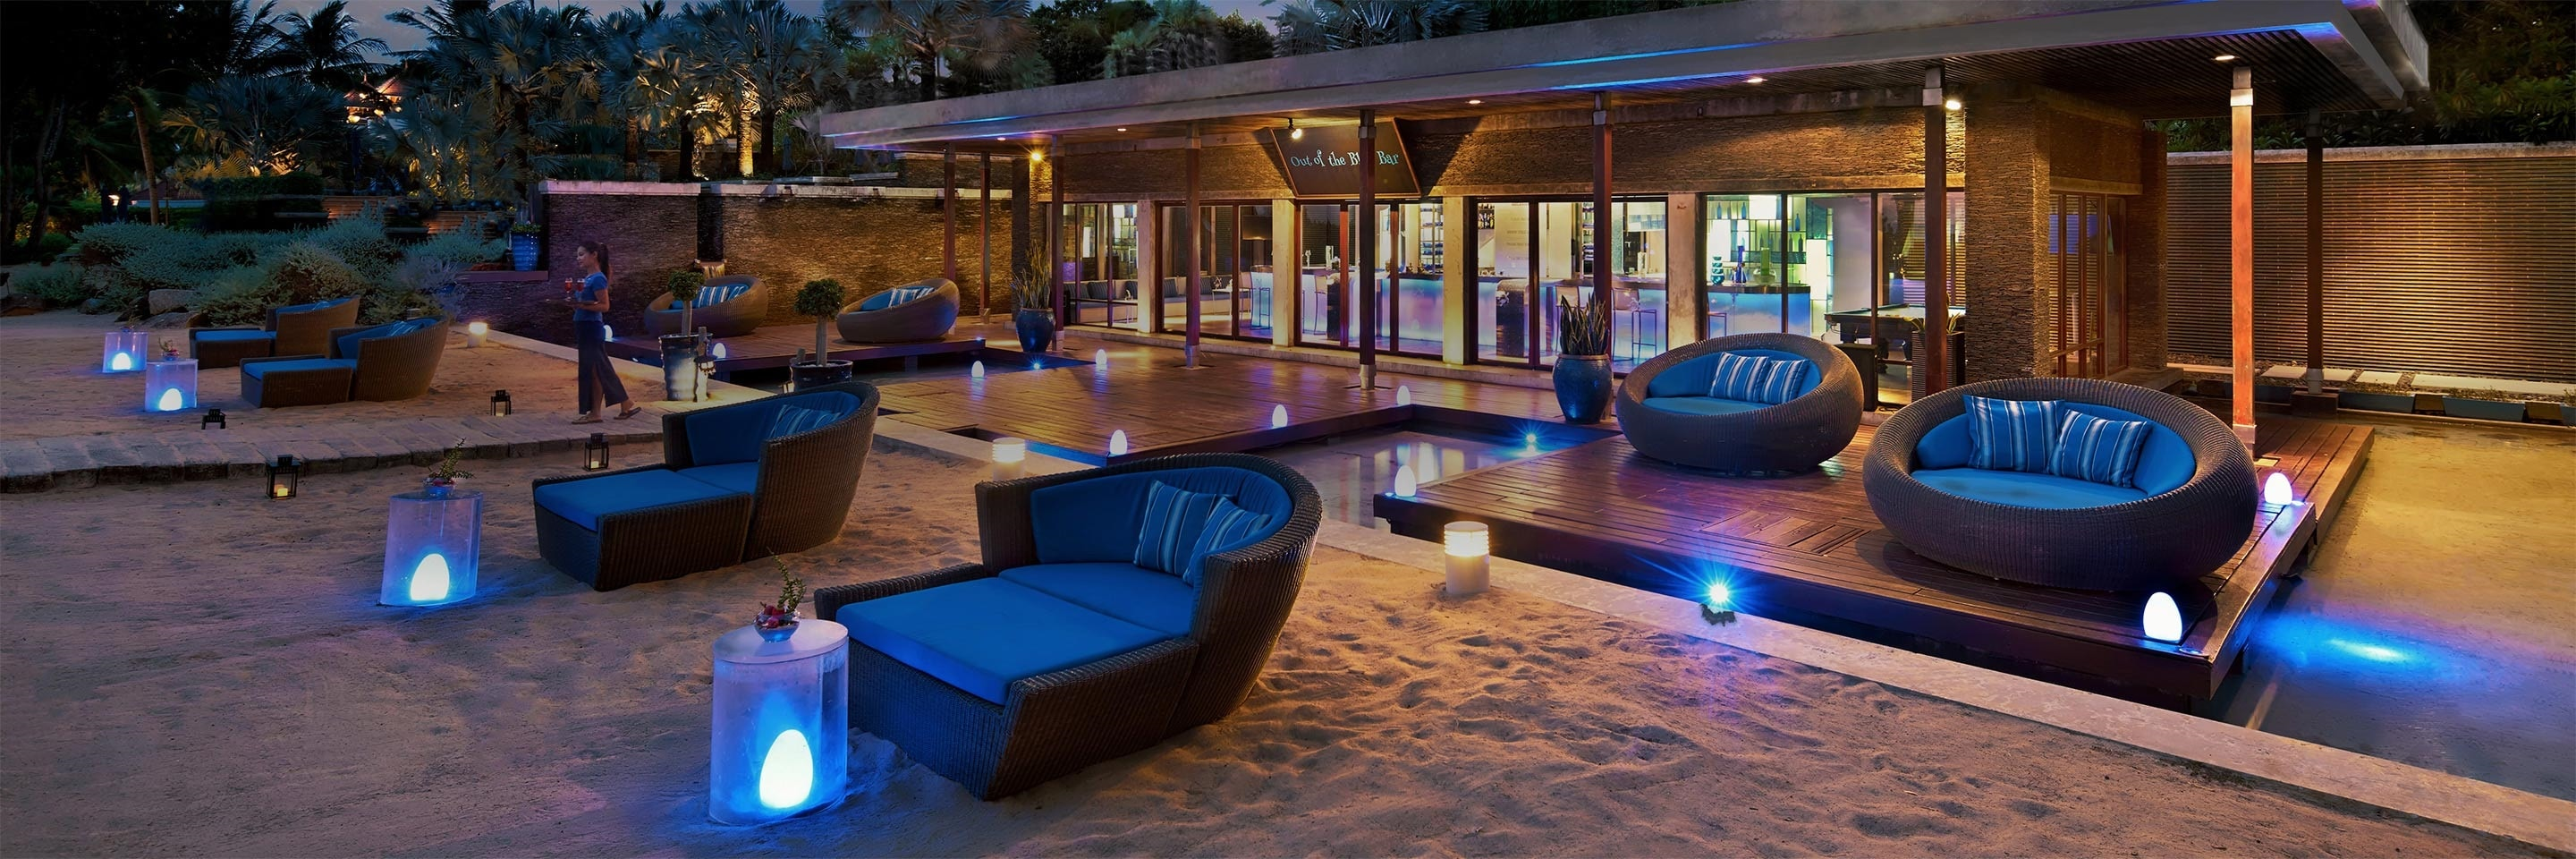 Beach bar at dusk. JW Marriott Phuket Resort & Spa